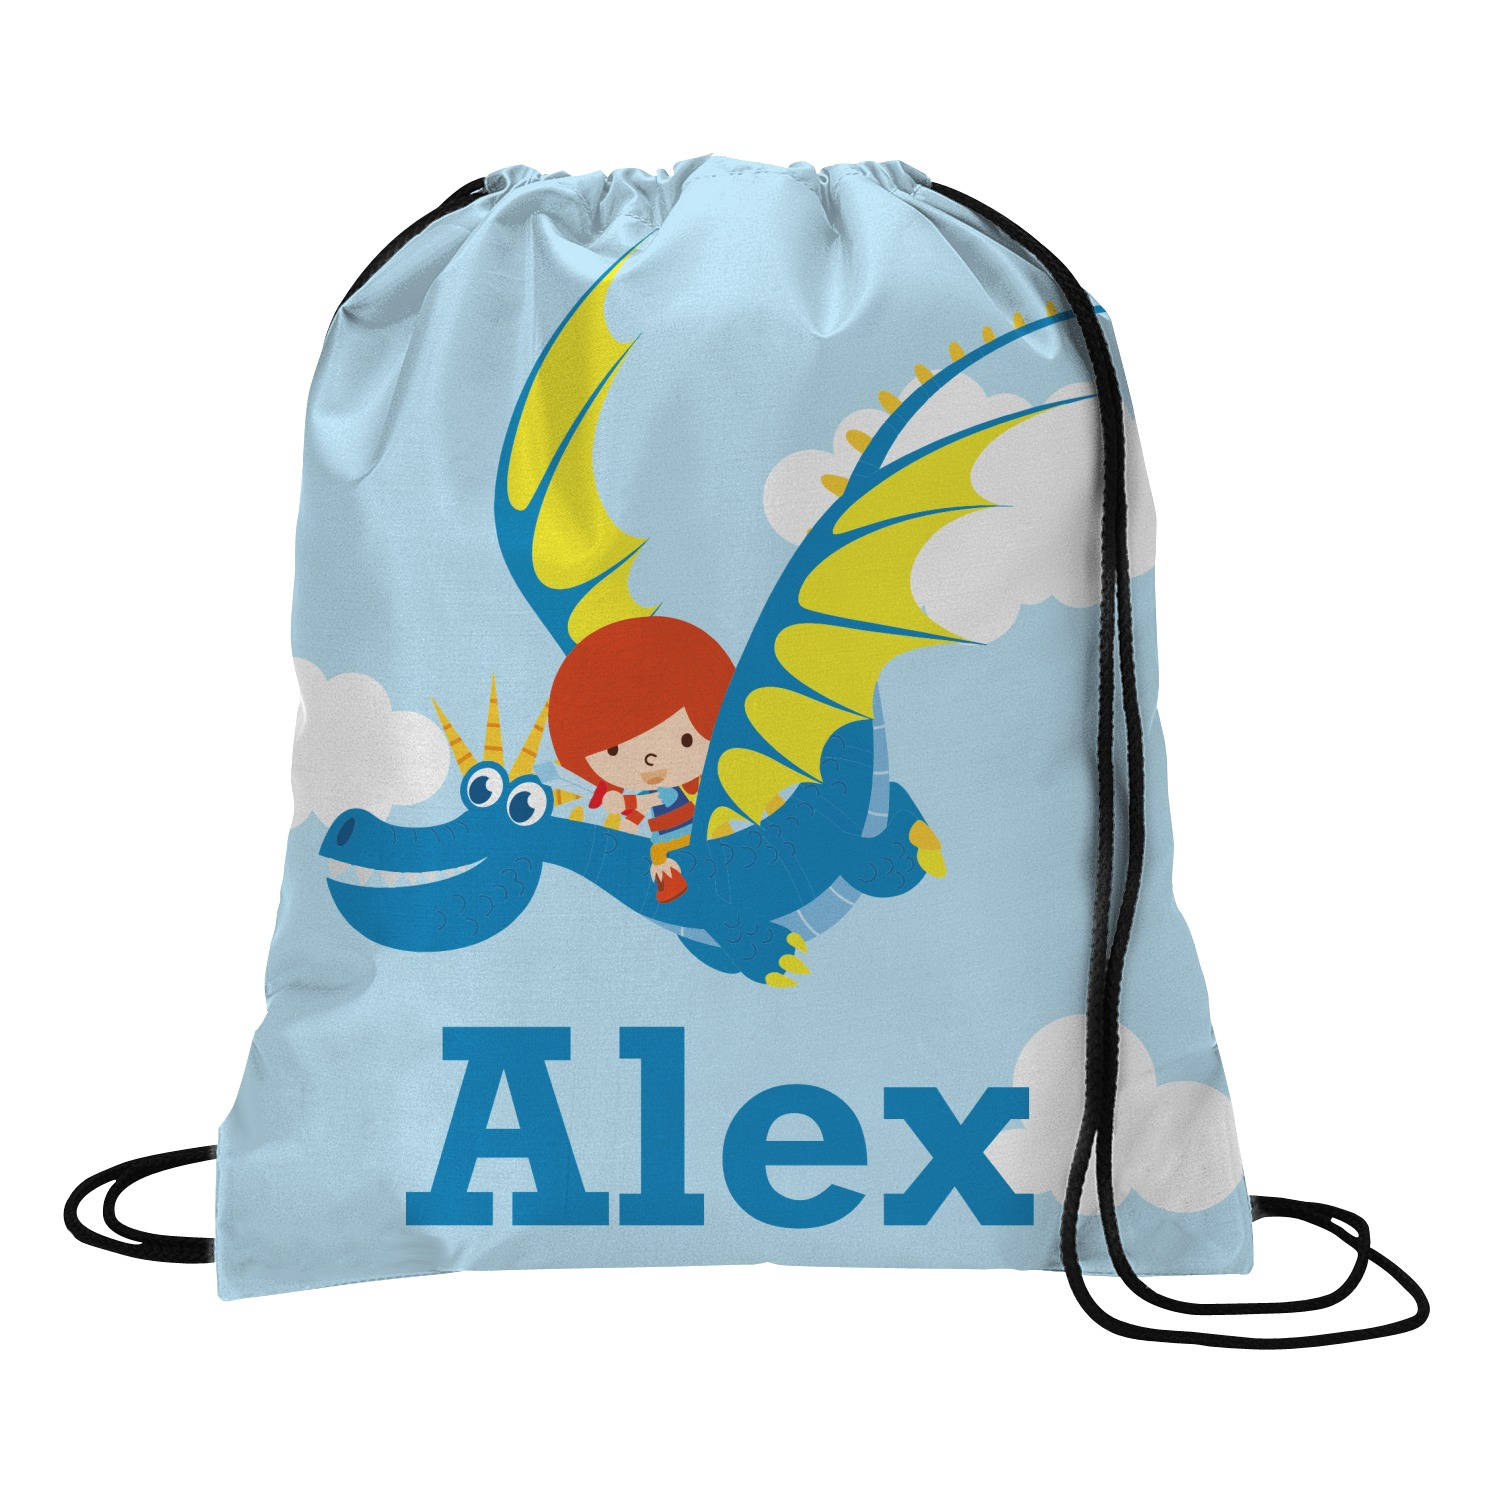 Flying A Dragon Drawstring Backpack Small Personalized